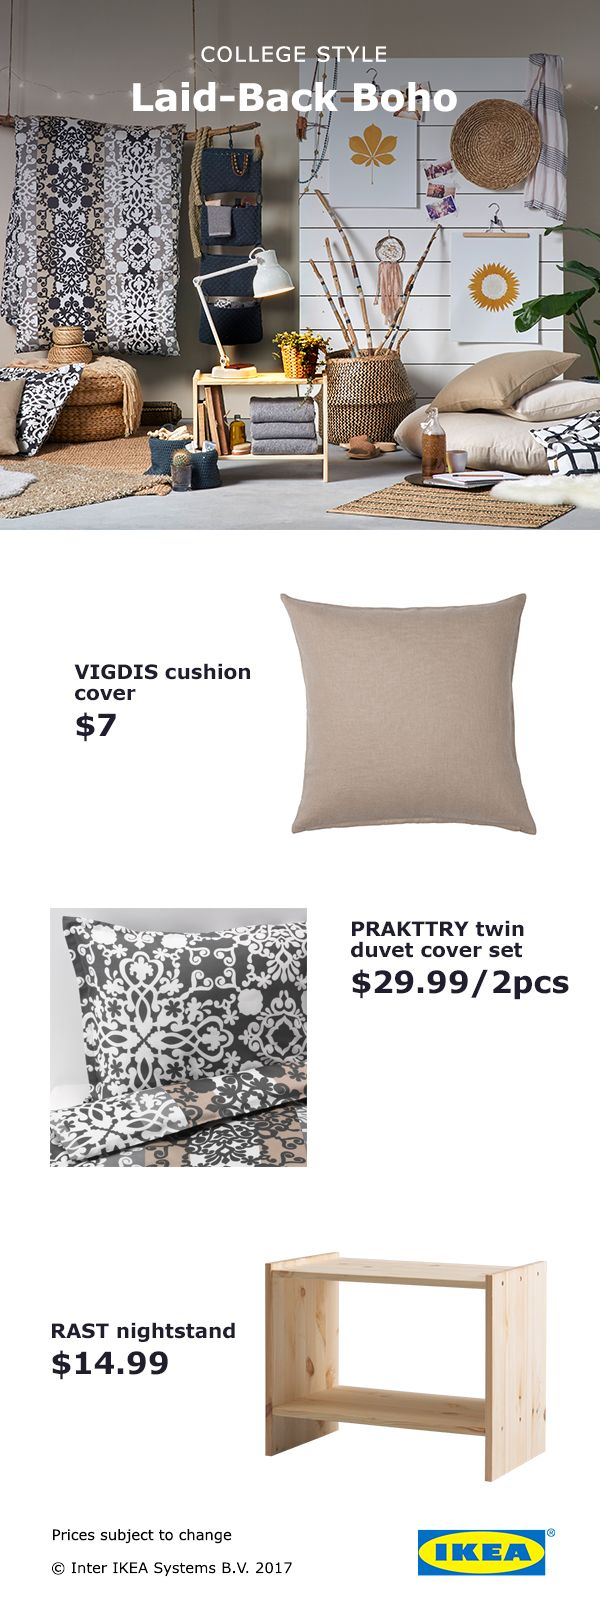 Get a relaxed college style with bohemian-inspired pieces like the IKEA PRAKTTRY twin duvet cover set and RAST nightstand.